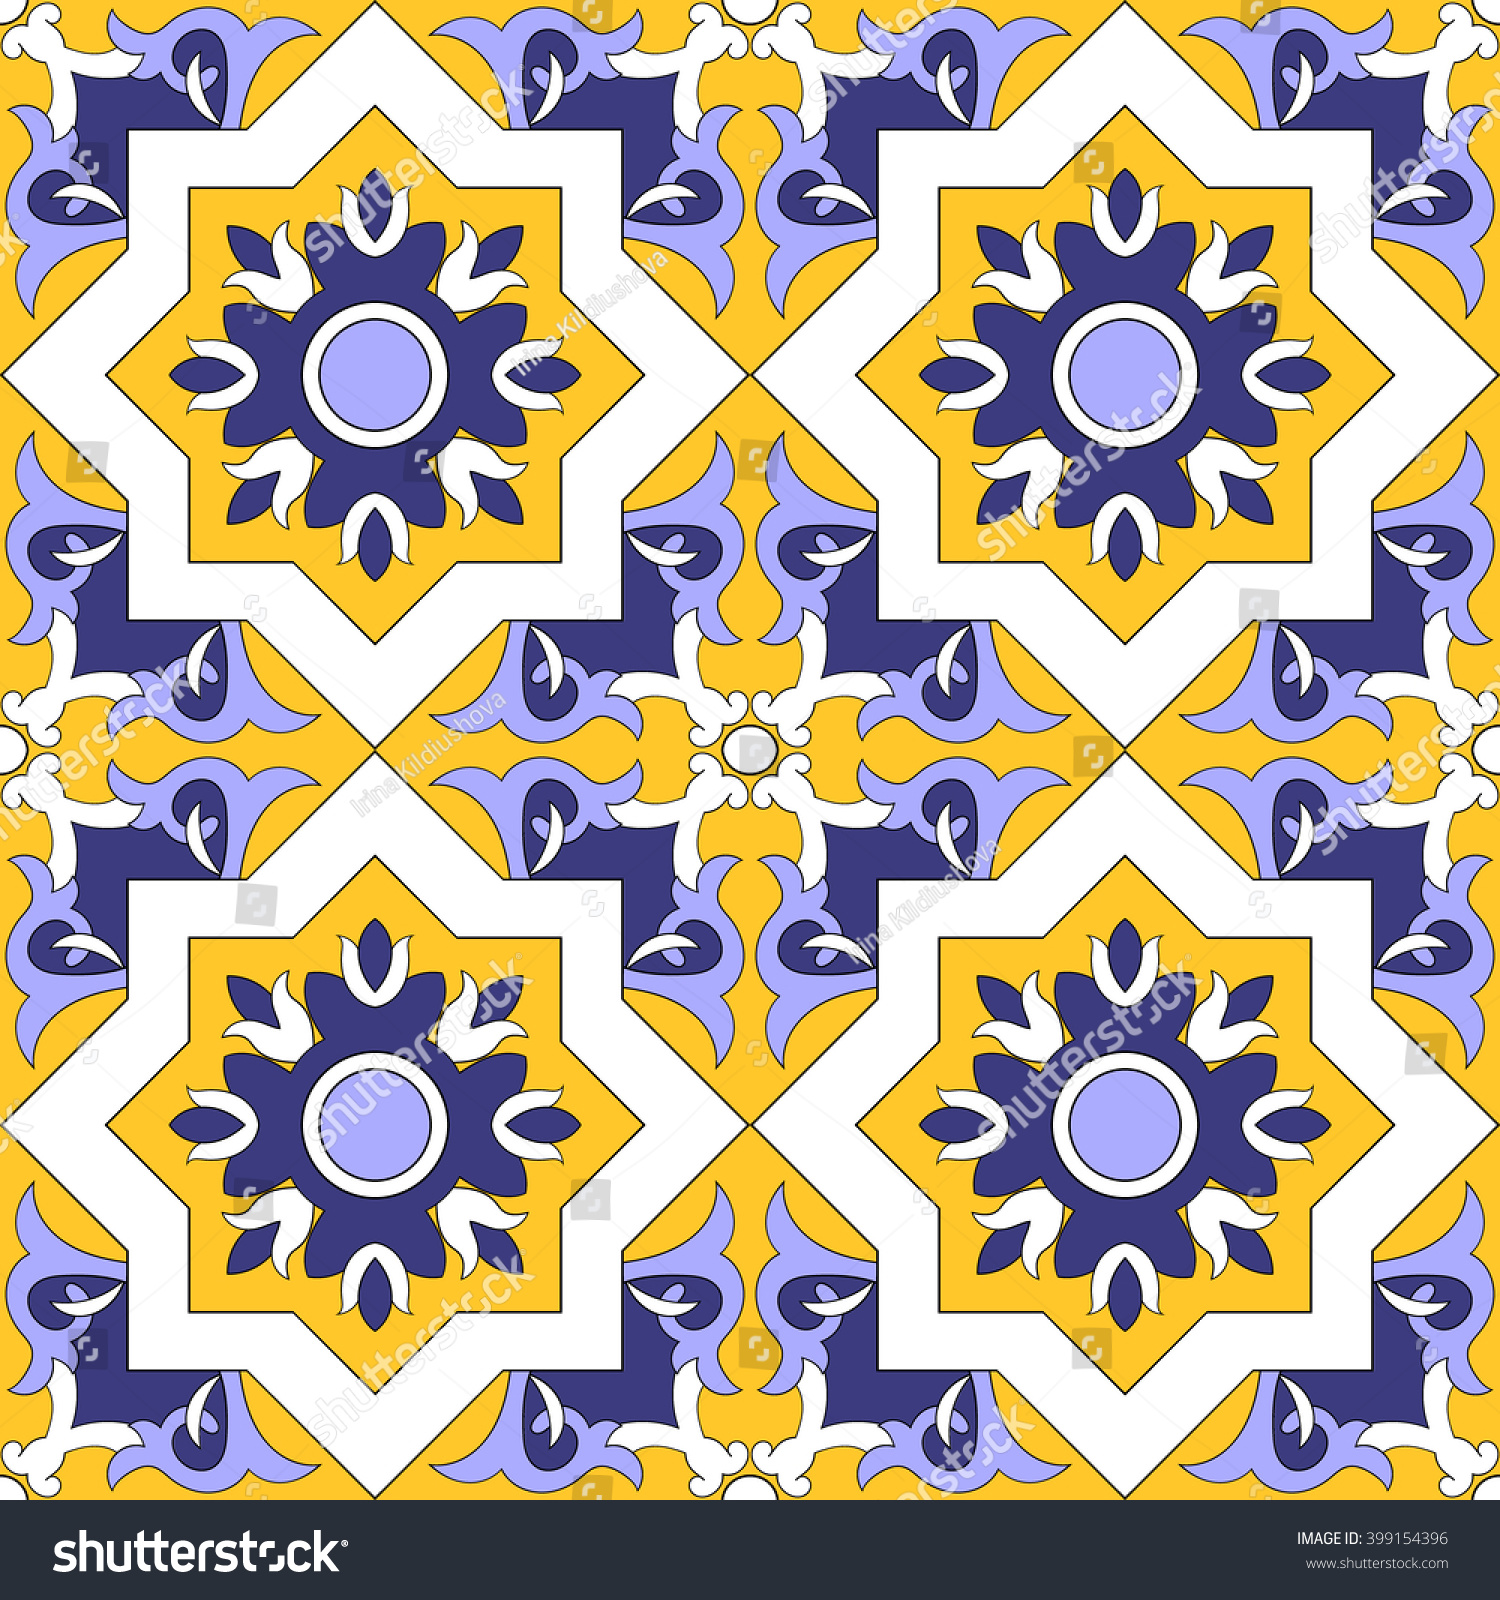 Tile floor tiles pattern vector seamless stock vector 399154396 tile floor tiles pattern vector seamless arabic style azulejo portuguese tiles spanish dailygadgetfo Choice Image